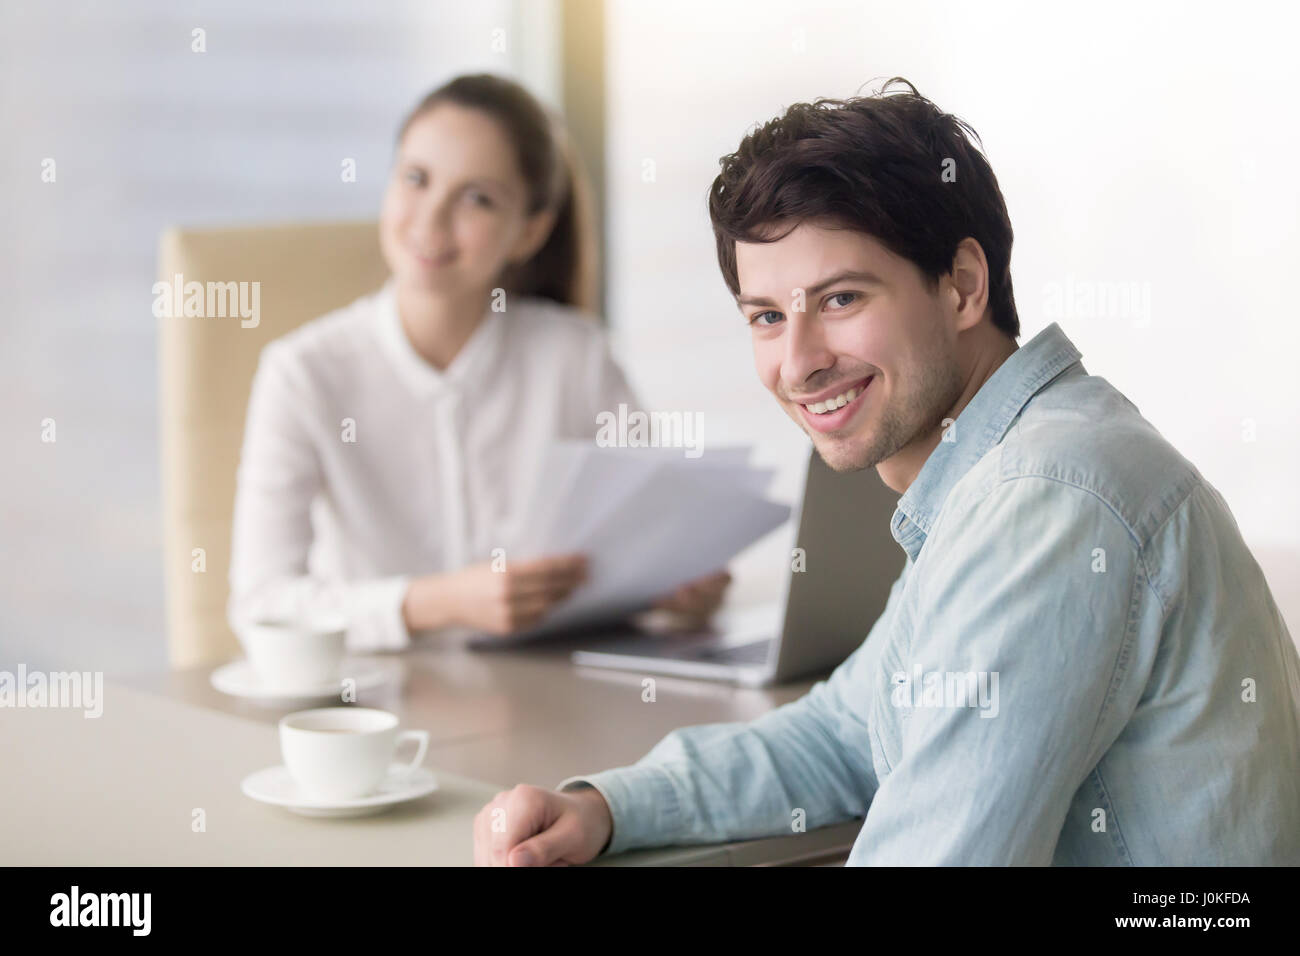 Happy young man satisfied with successful interview with female  - Stock Image